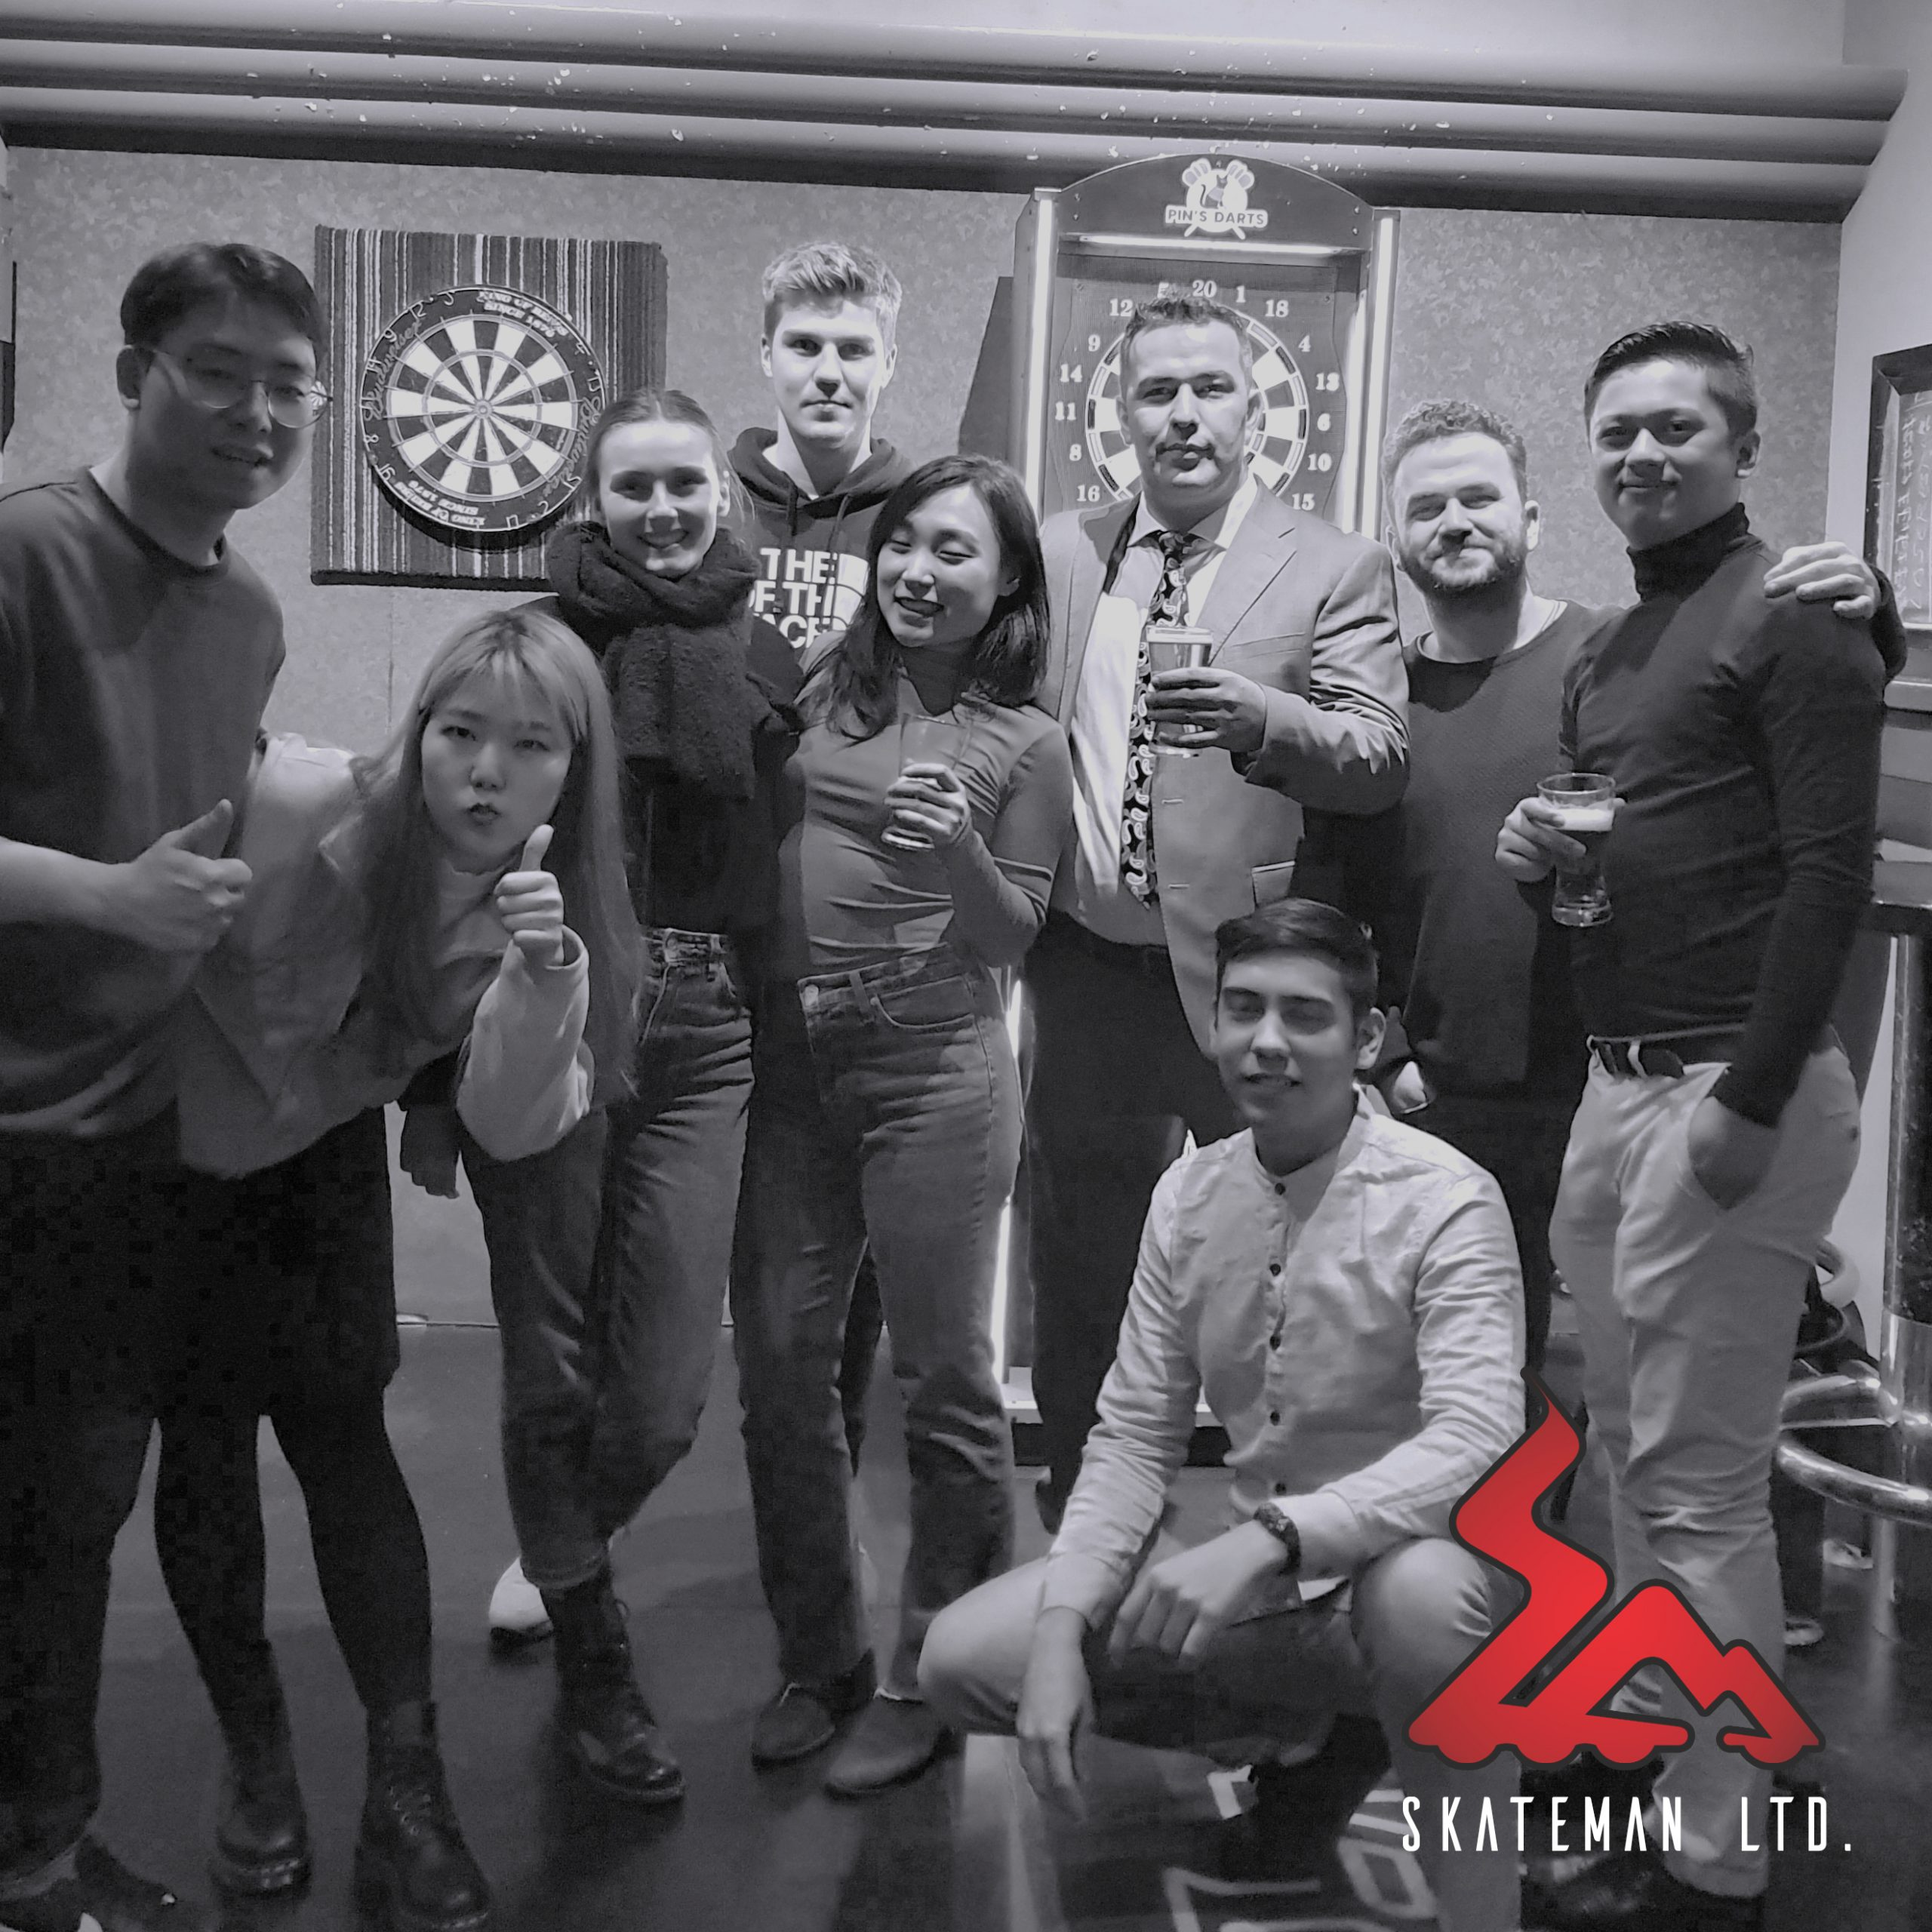 Black and white photo of Skateman team during New Year's dinner